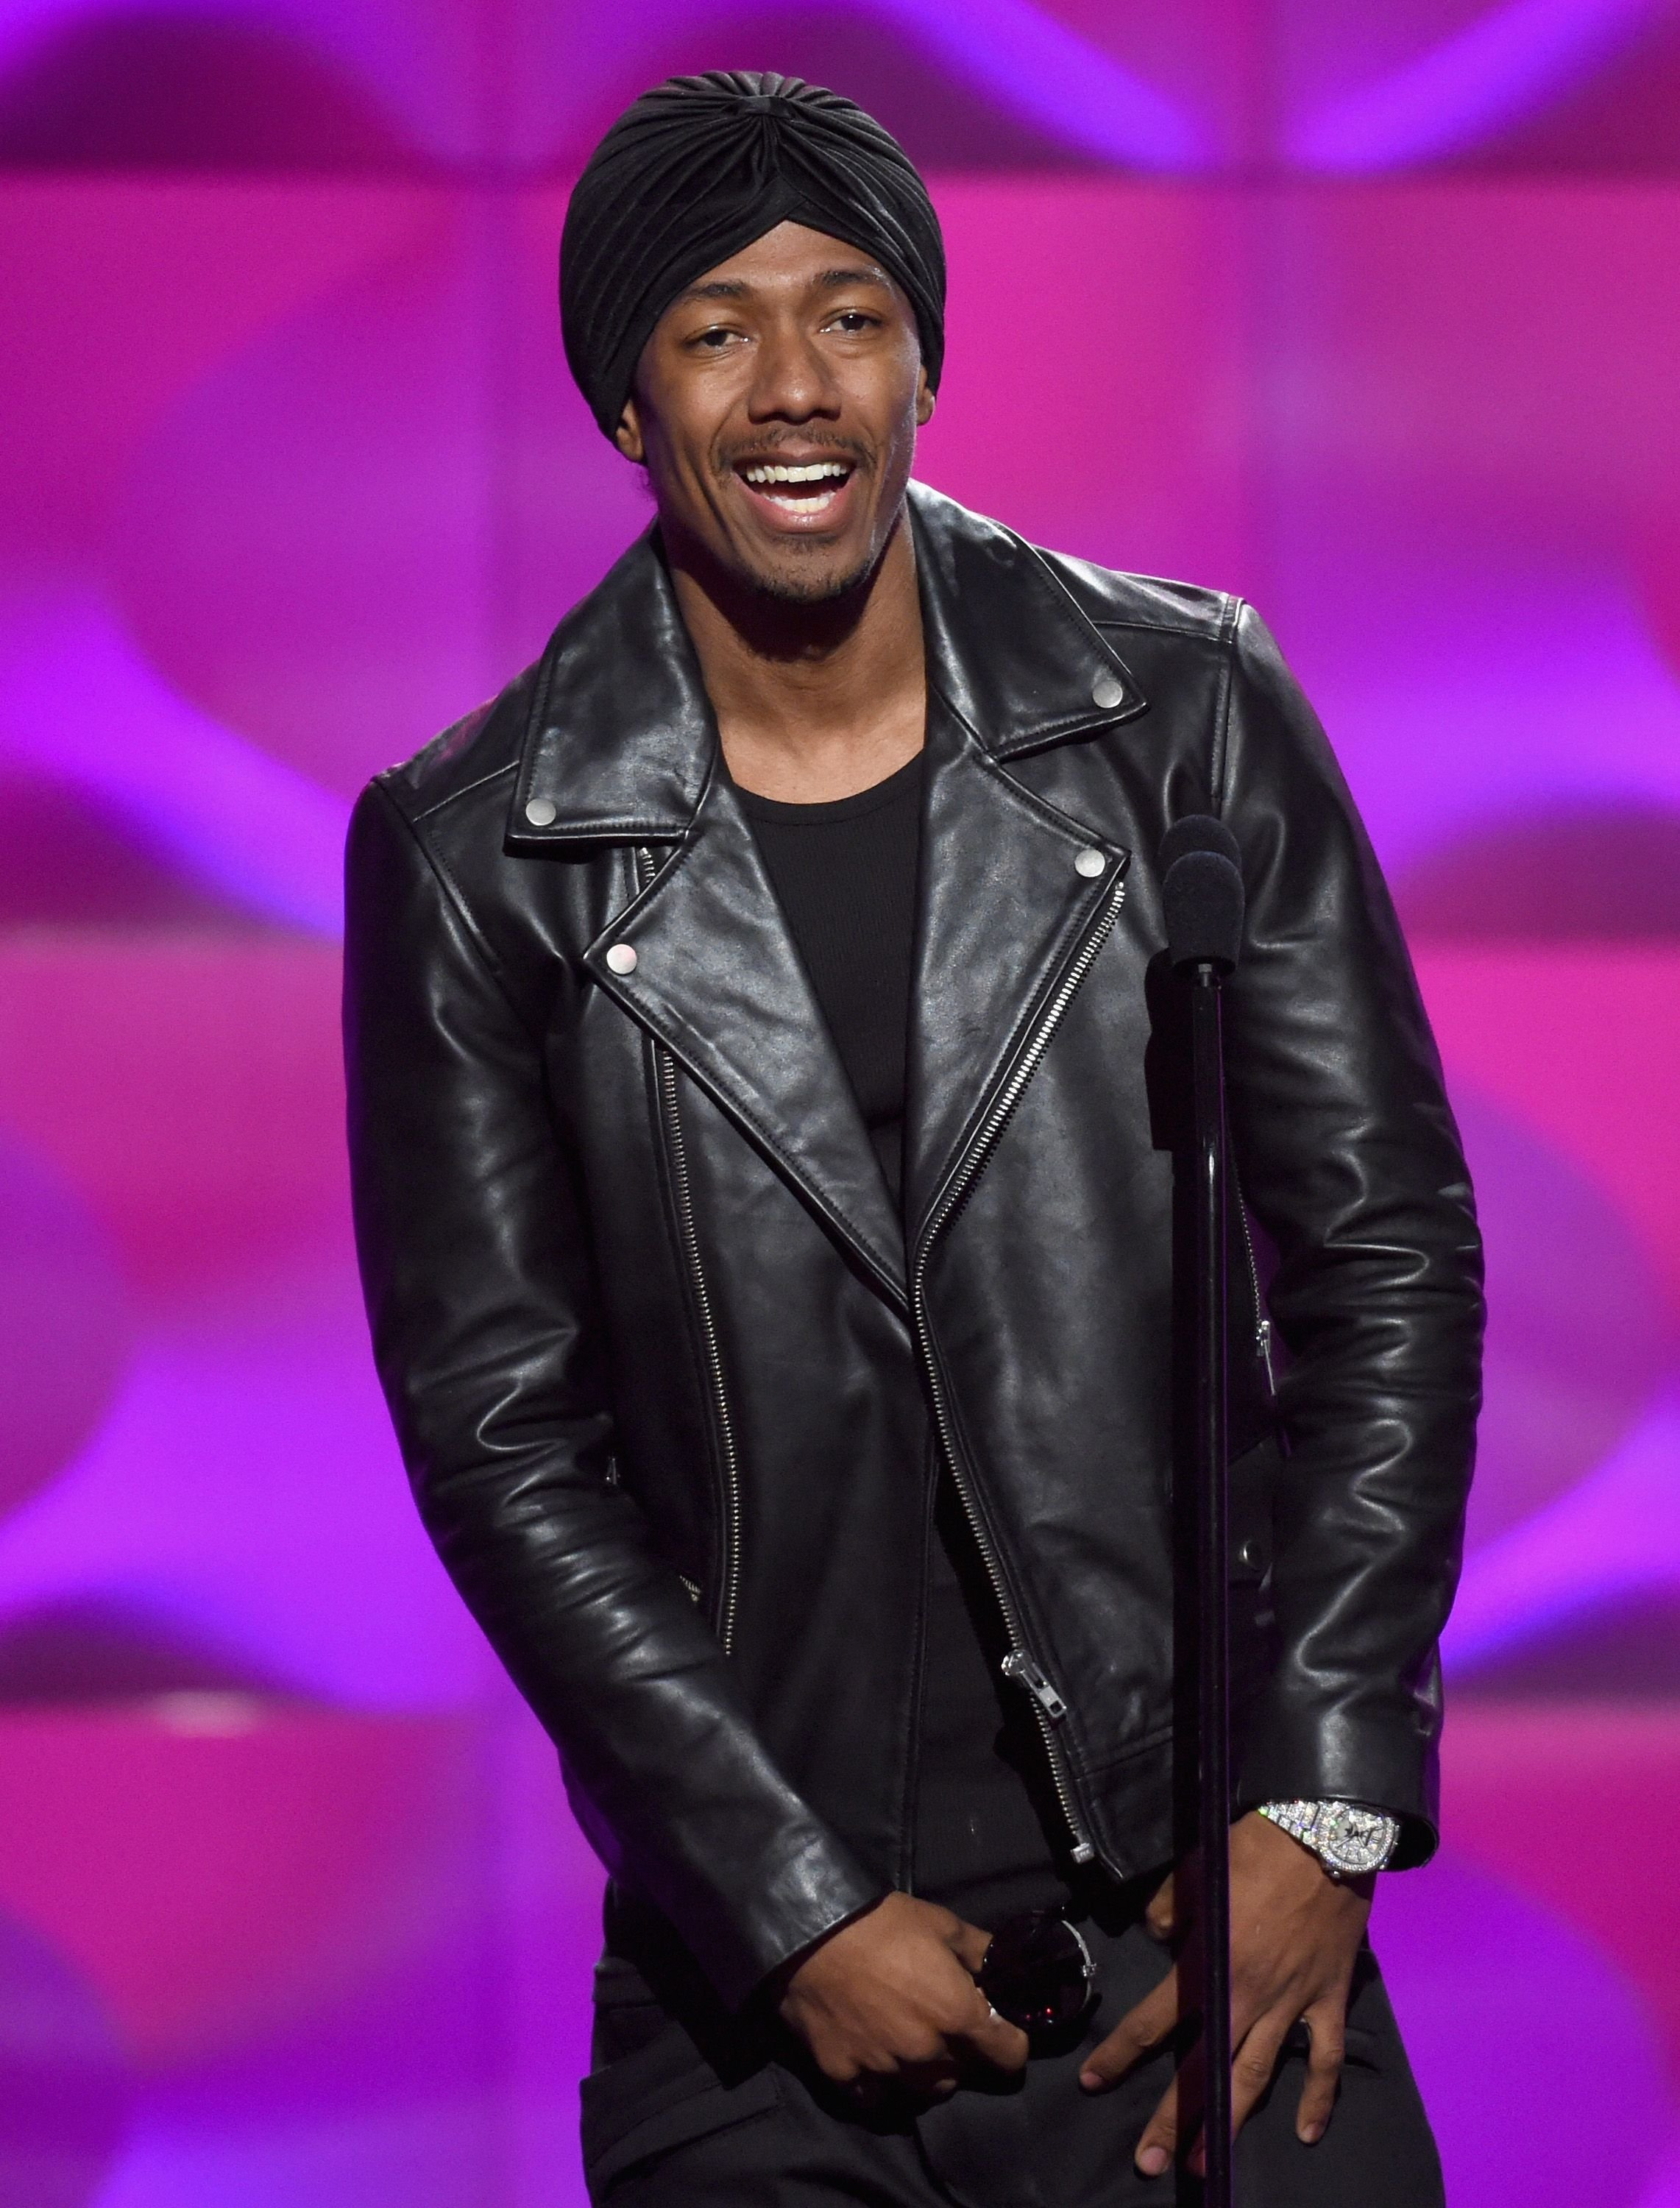 Nick Cannon spoke onstage at Billboard Women In Music 2017 at The Ray Dolby Ballroom at Hollywood & Highland Center on November 30, 2017 | Photo: Getty Images